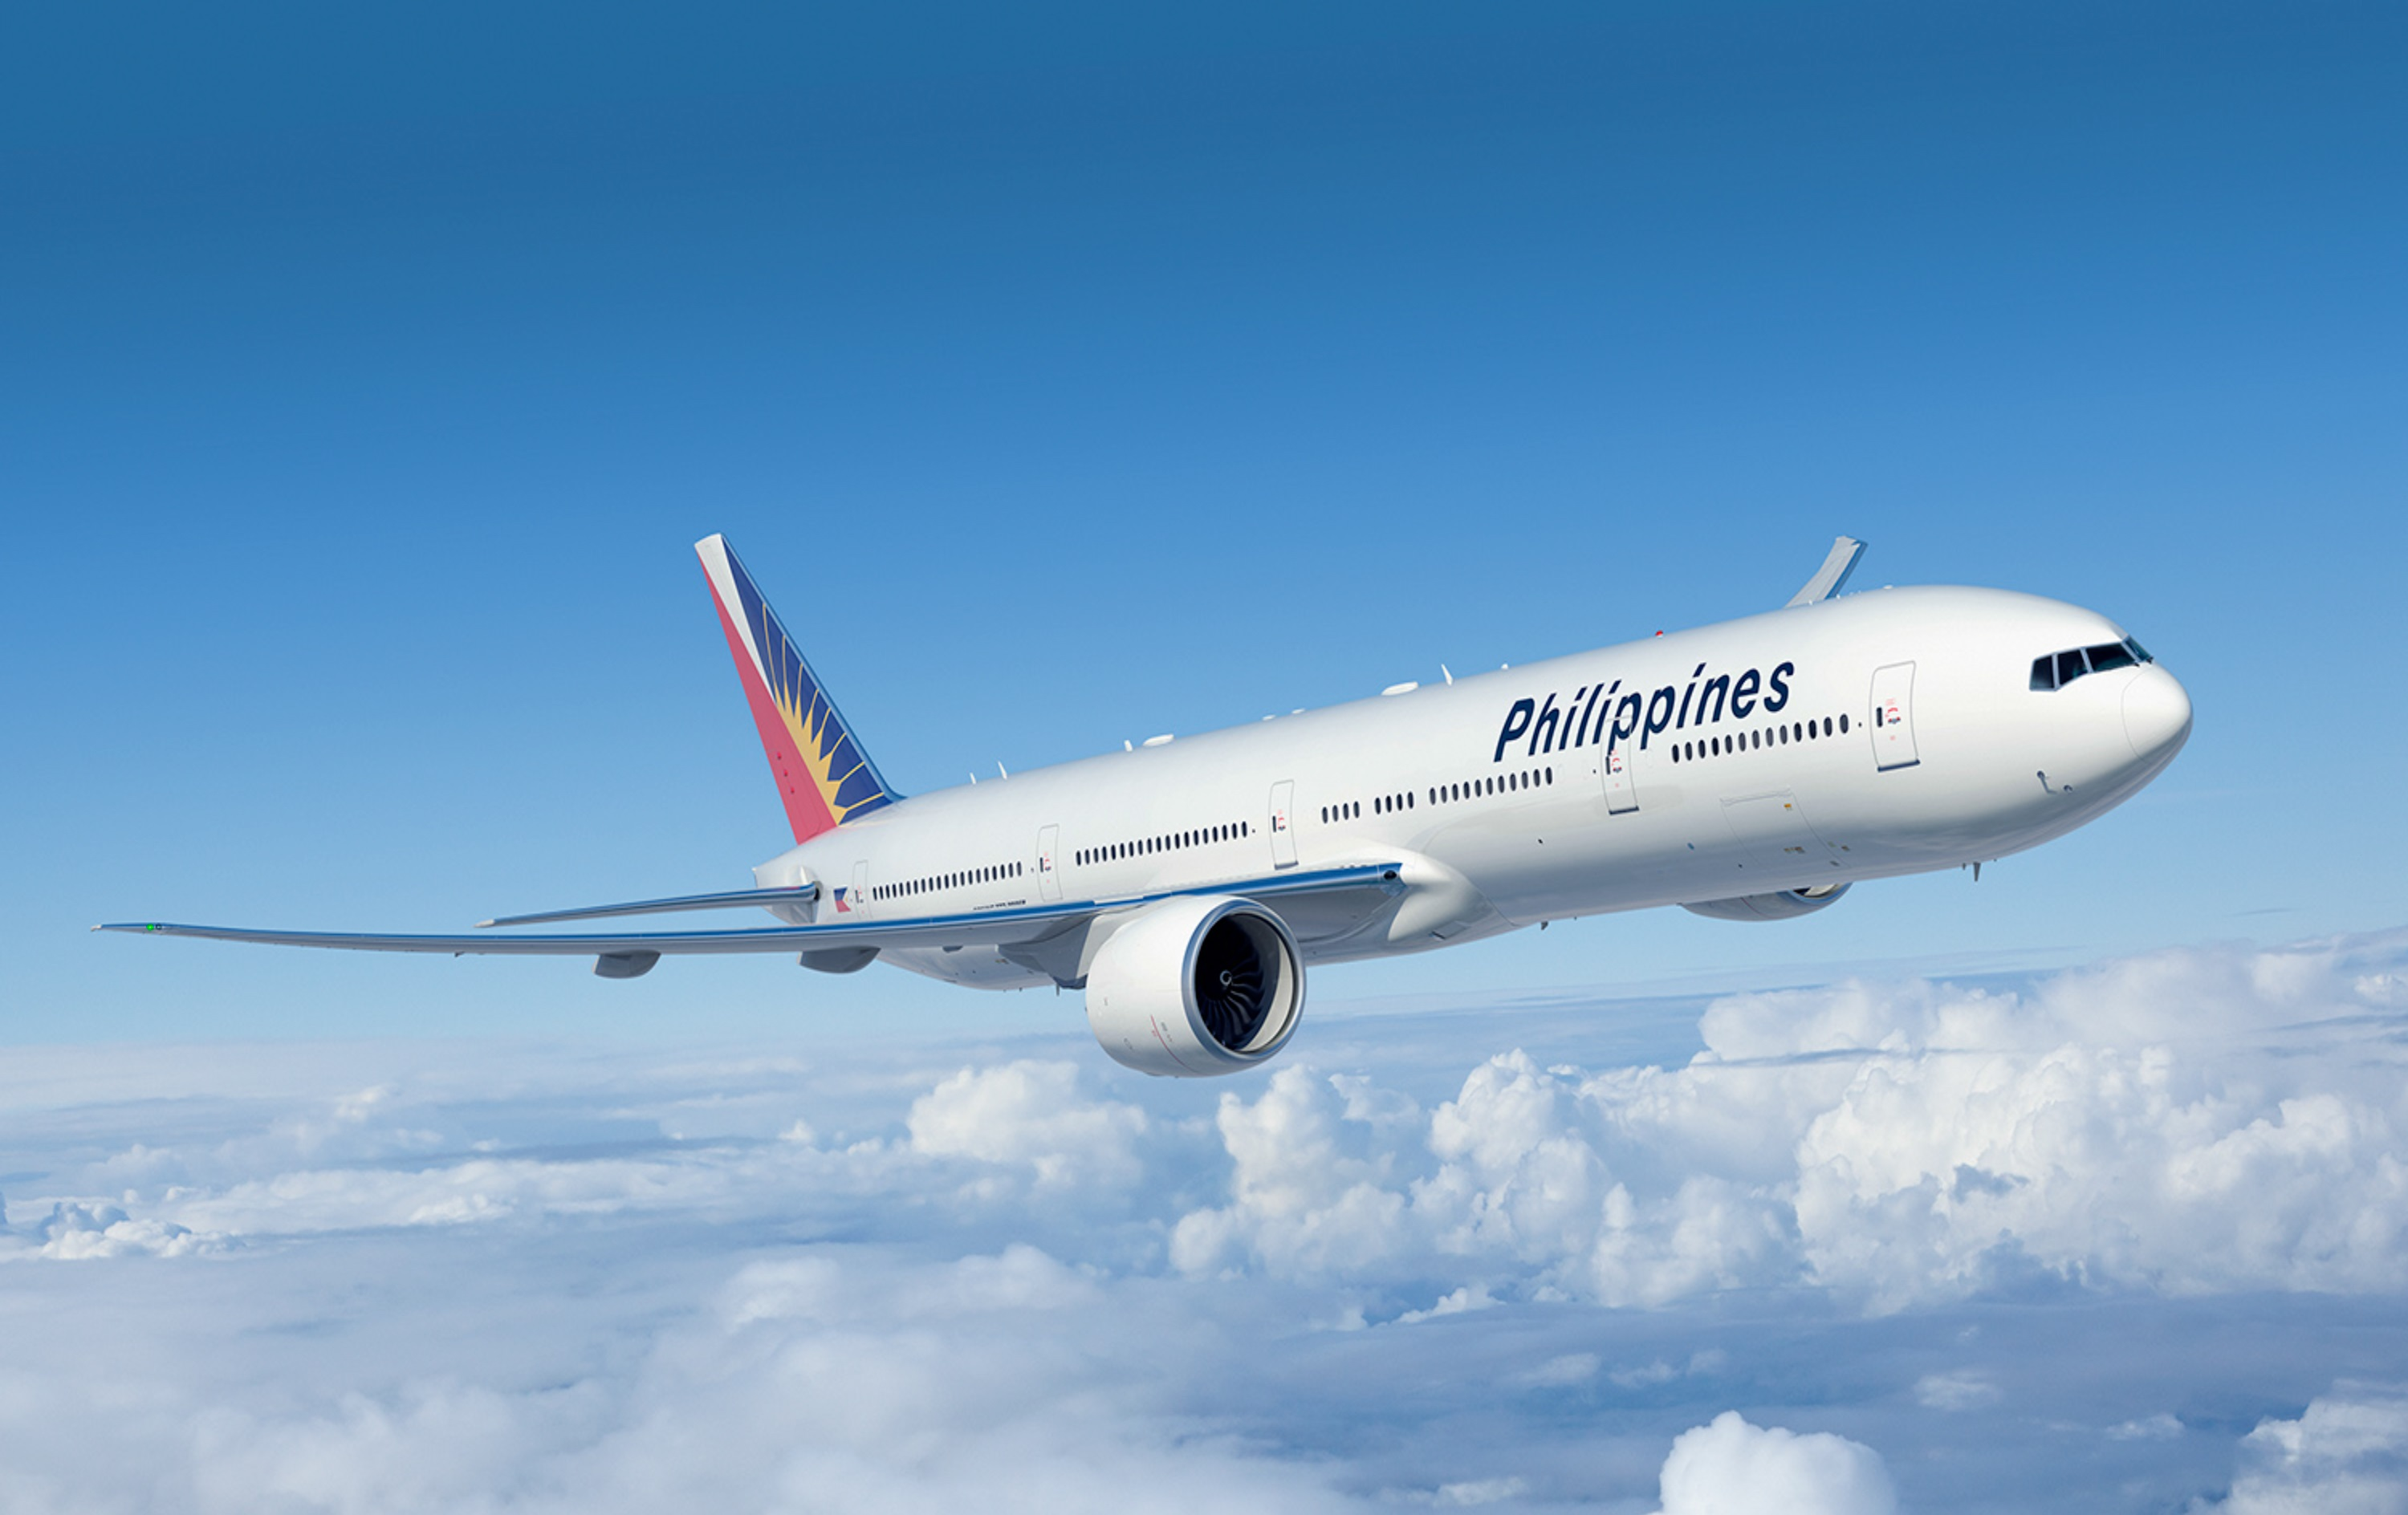 Flight from Los Angeles (LAX) to Manila via Philippine Airlines